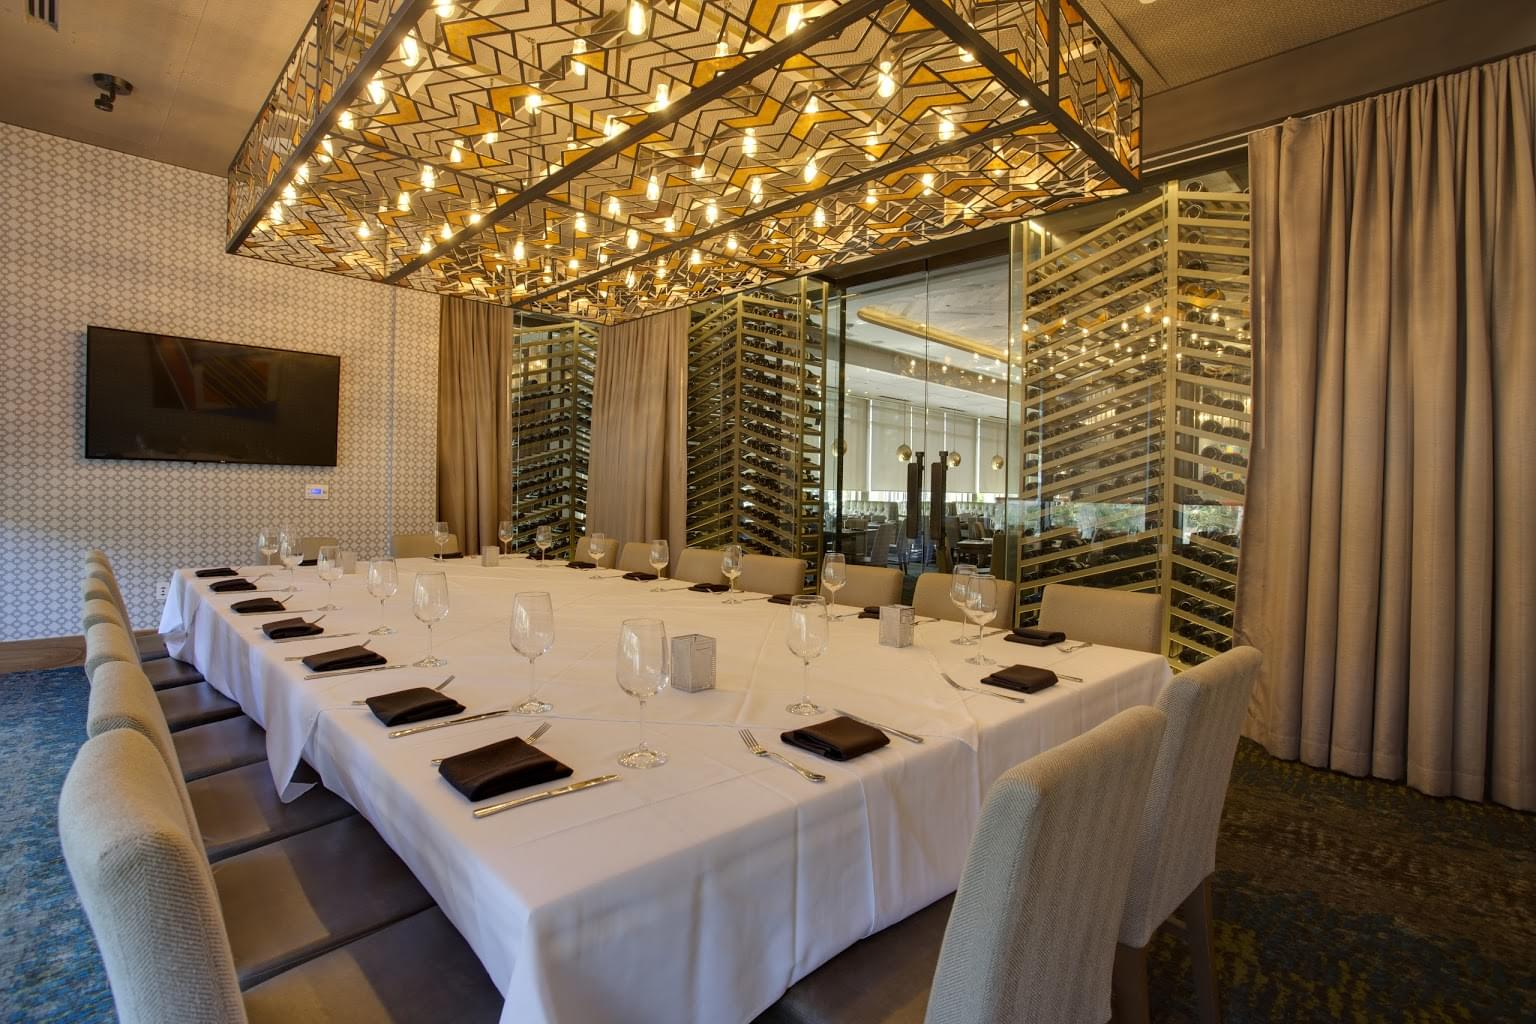 Del frisco 39 s double eagle steak house orlando fl see for Best private dining rooms orlando